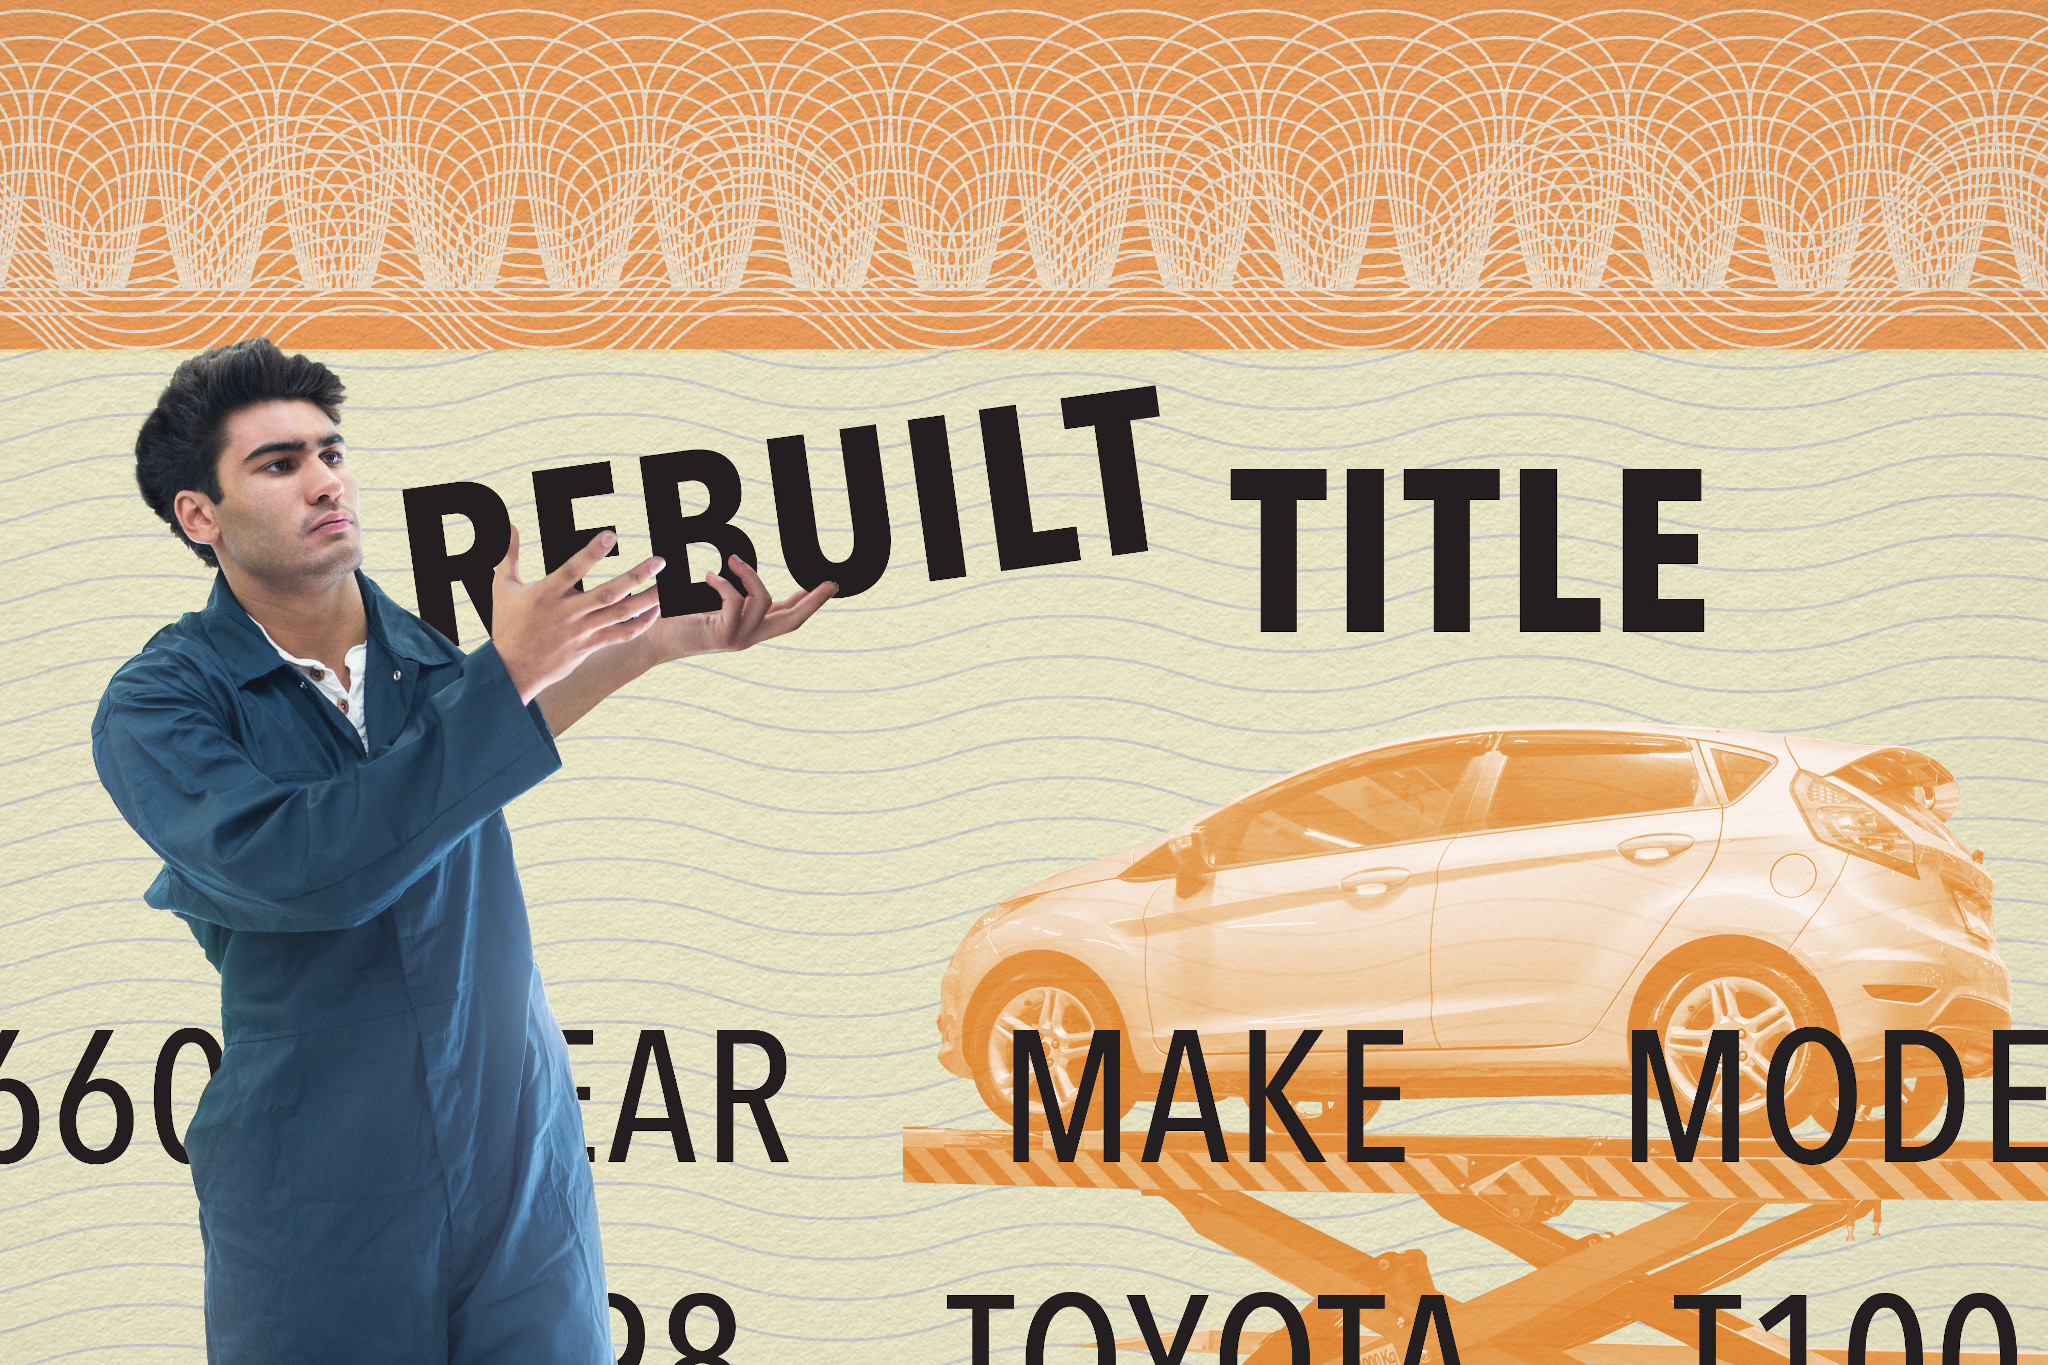 What Is a Rebuilt Title and Should I Buy a Car With One?